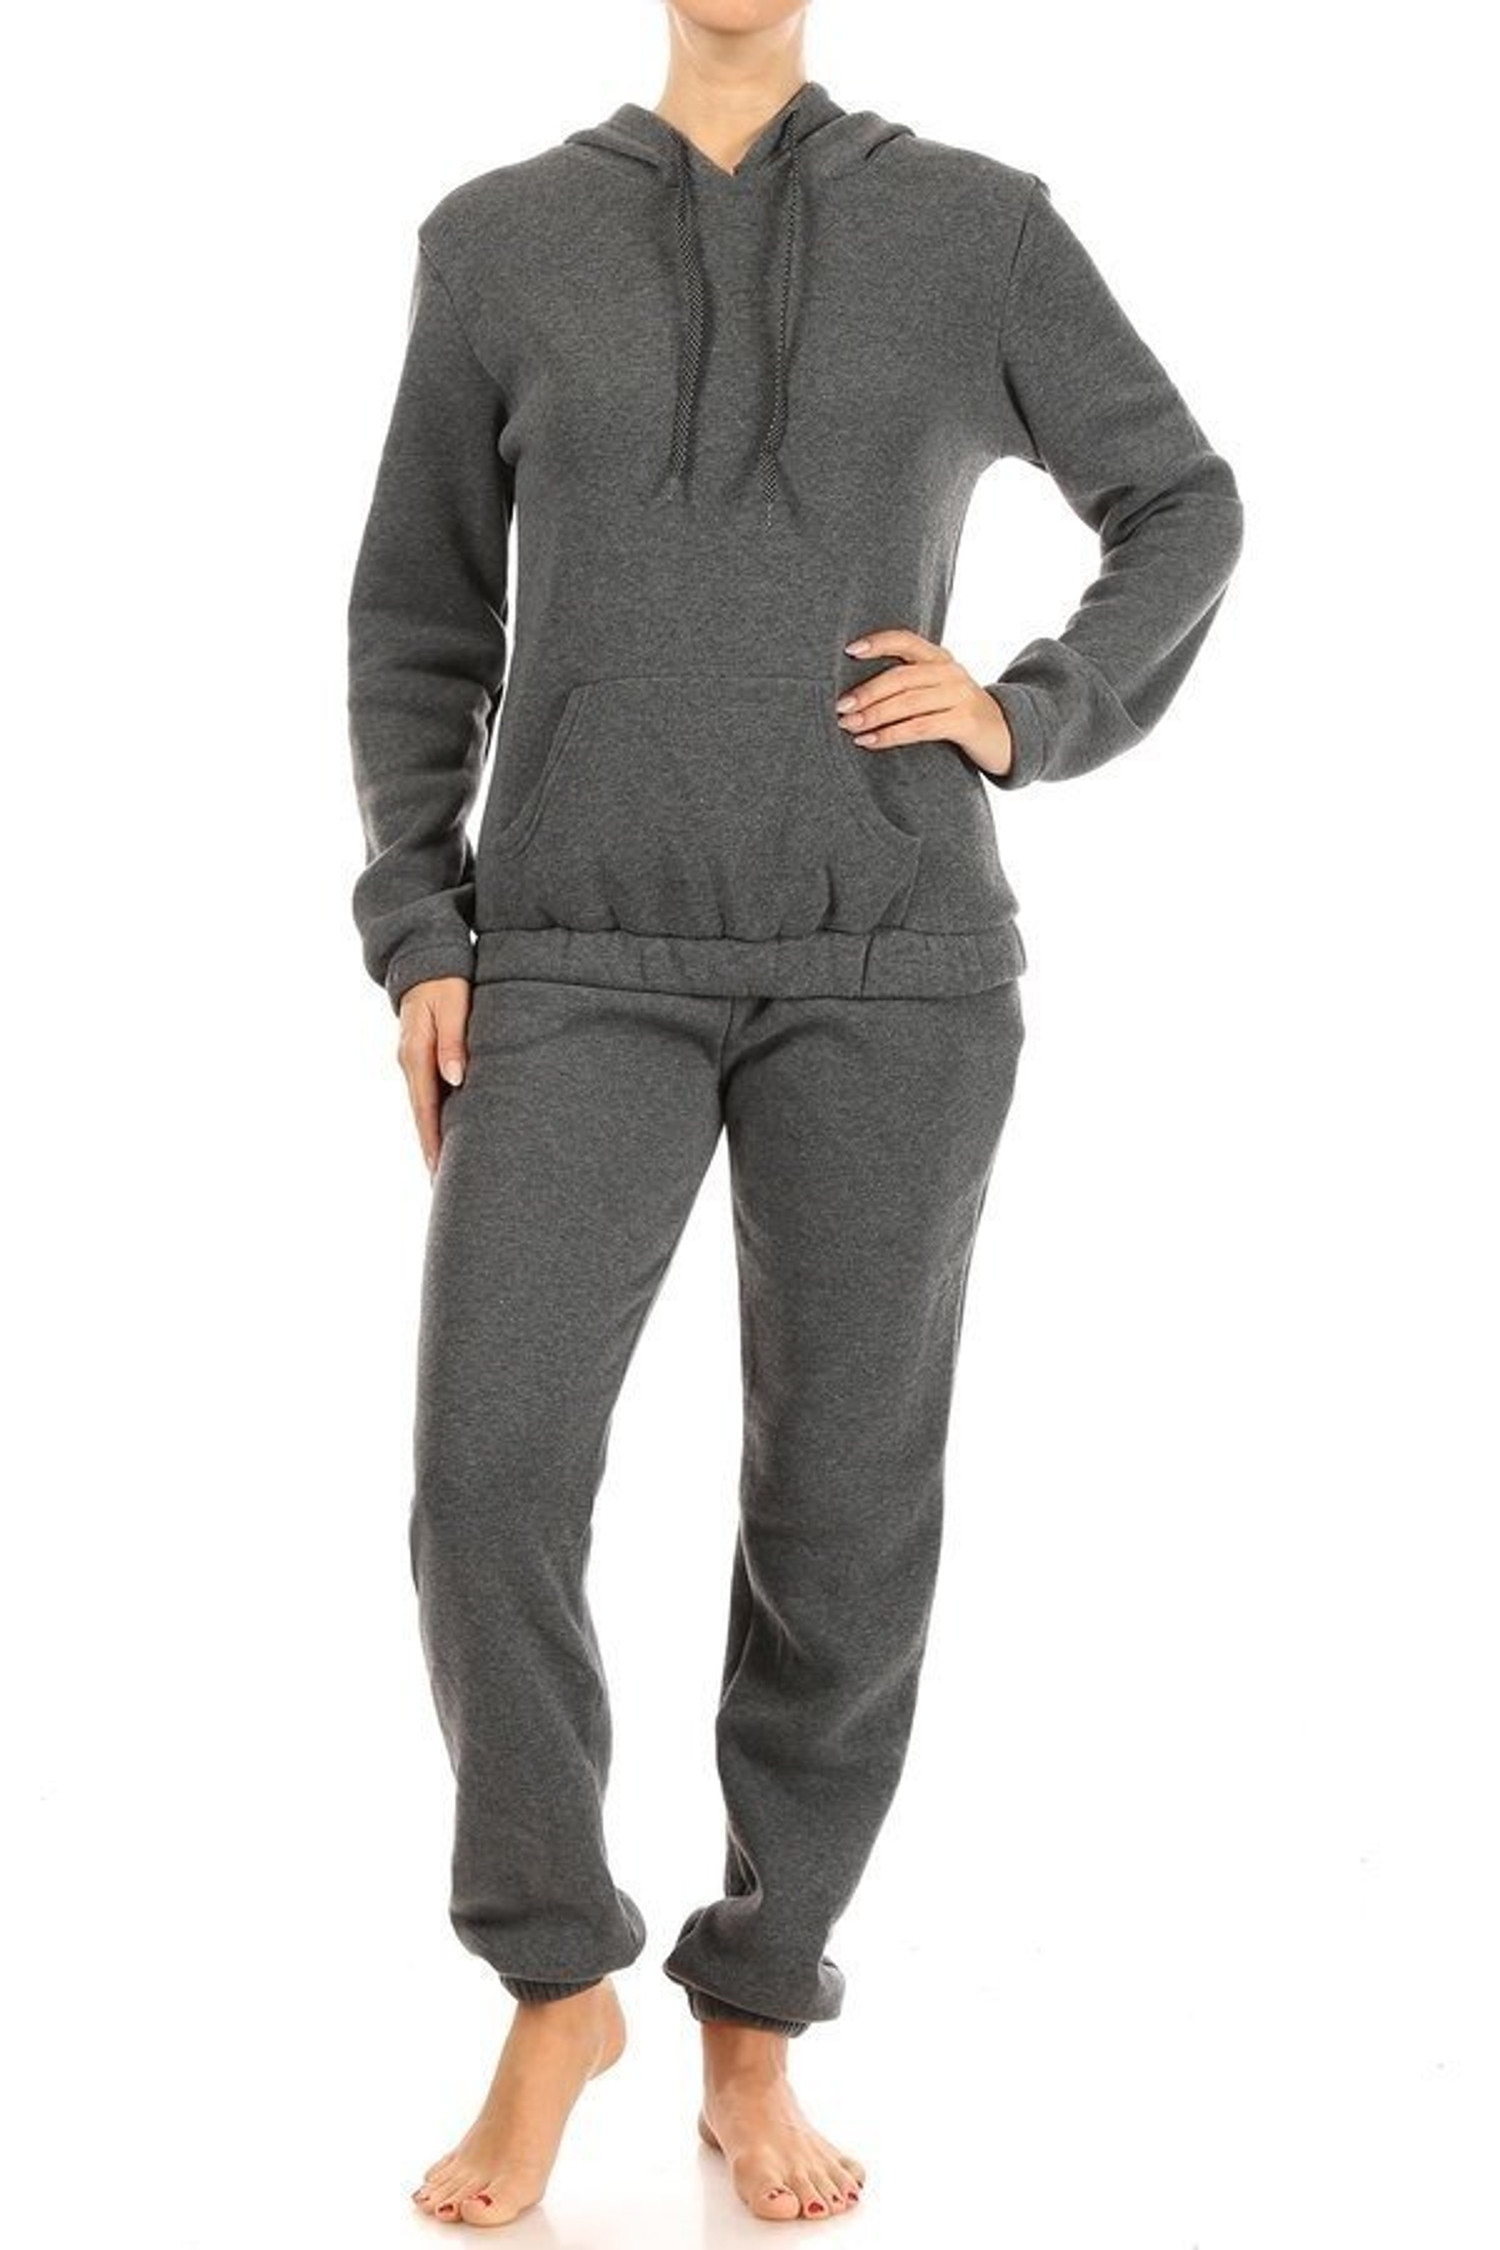 Charcoal 2 Piece Solid Fleece Lined French Terry Joggers and Hoodie Set